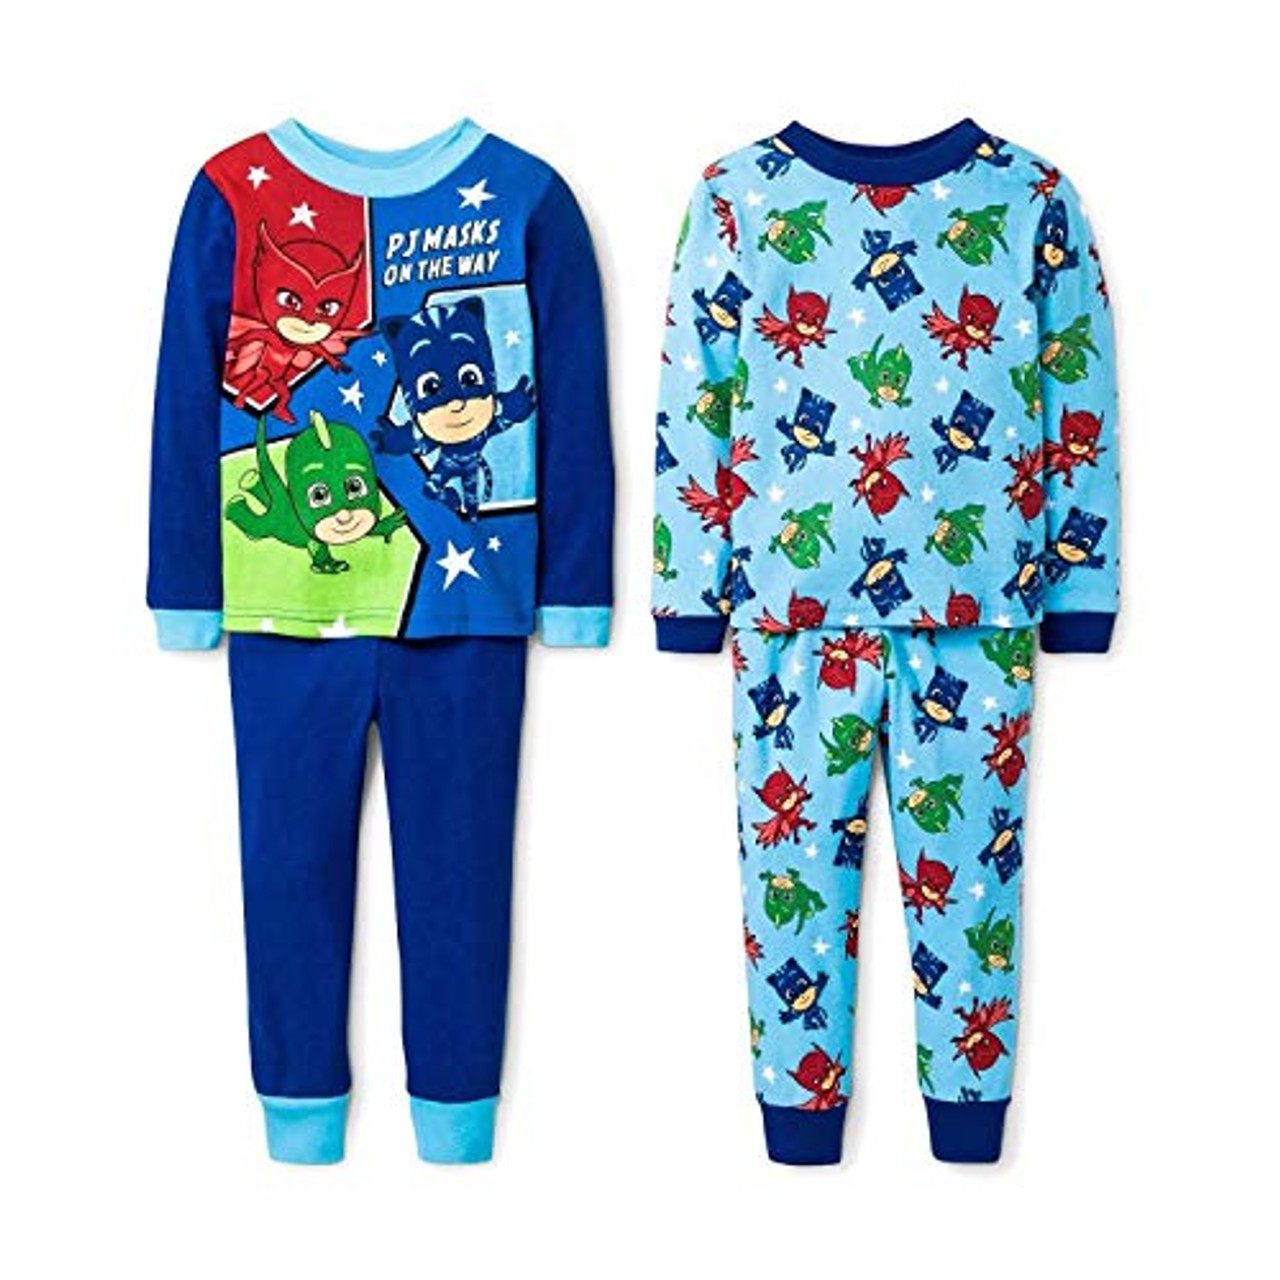 PJ Masks Little//Big Boys Four-Piece Pajama Set